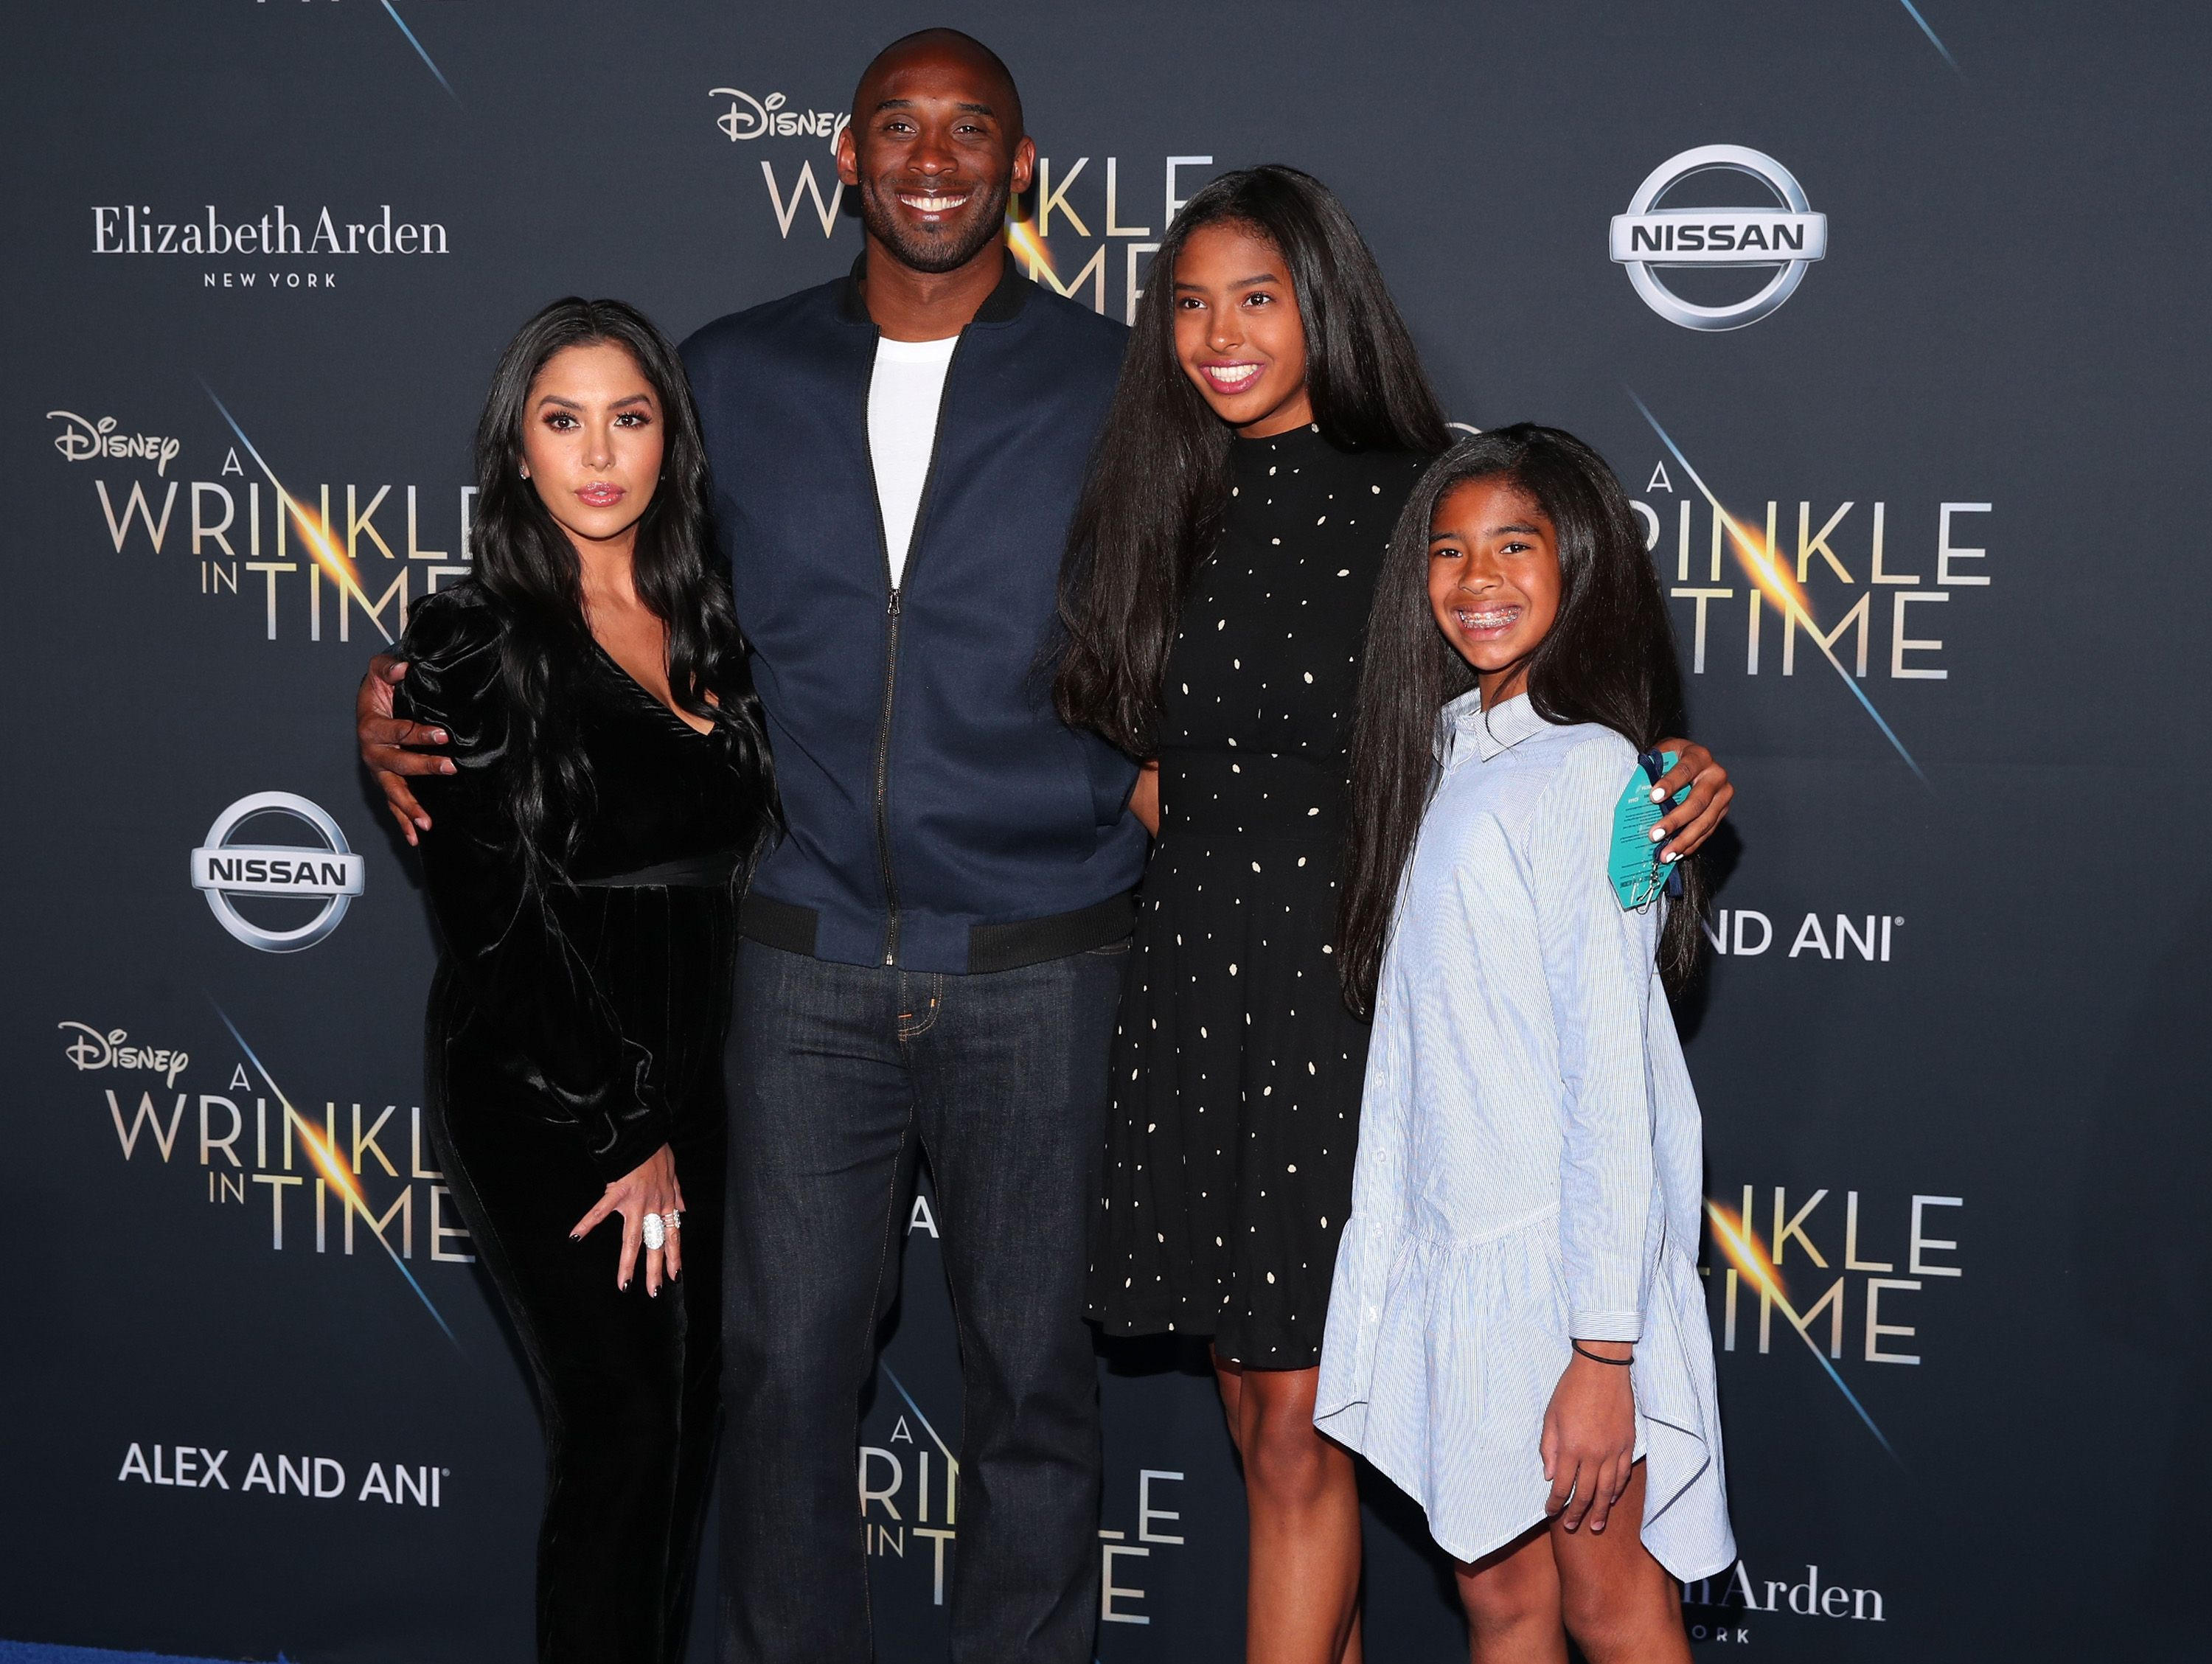 """Vanessa and Kobe Bryant with daughters Natalia and Gianna at the premiere of """"A Wrinkle In Time"""" in 2018, in Los Angeles   Source: Getty Images"""